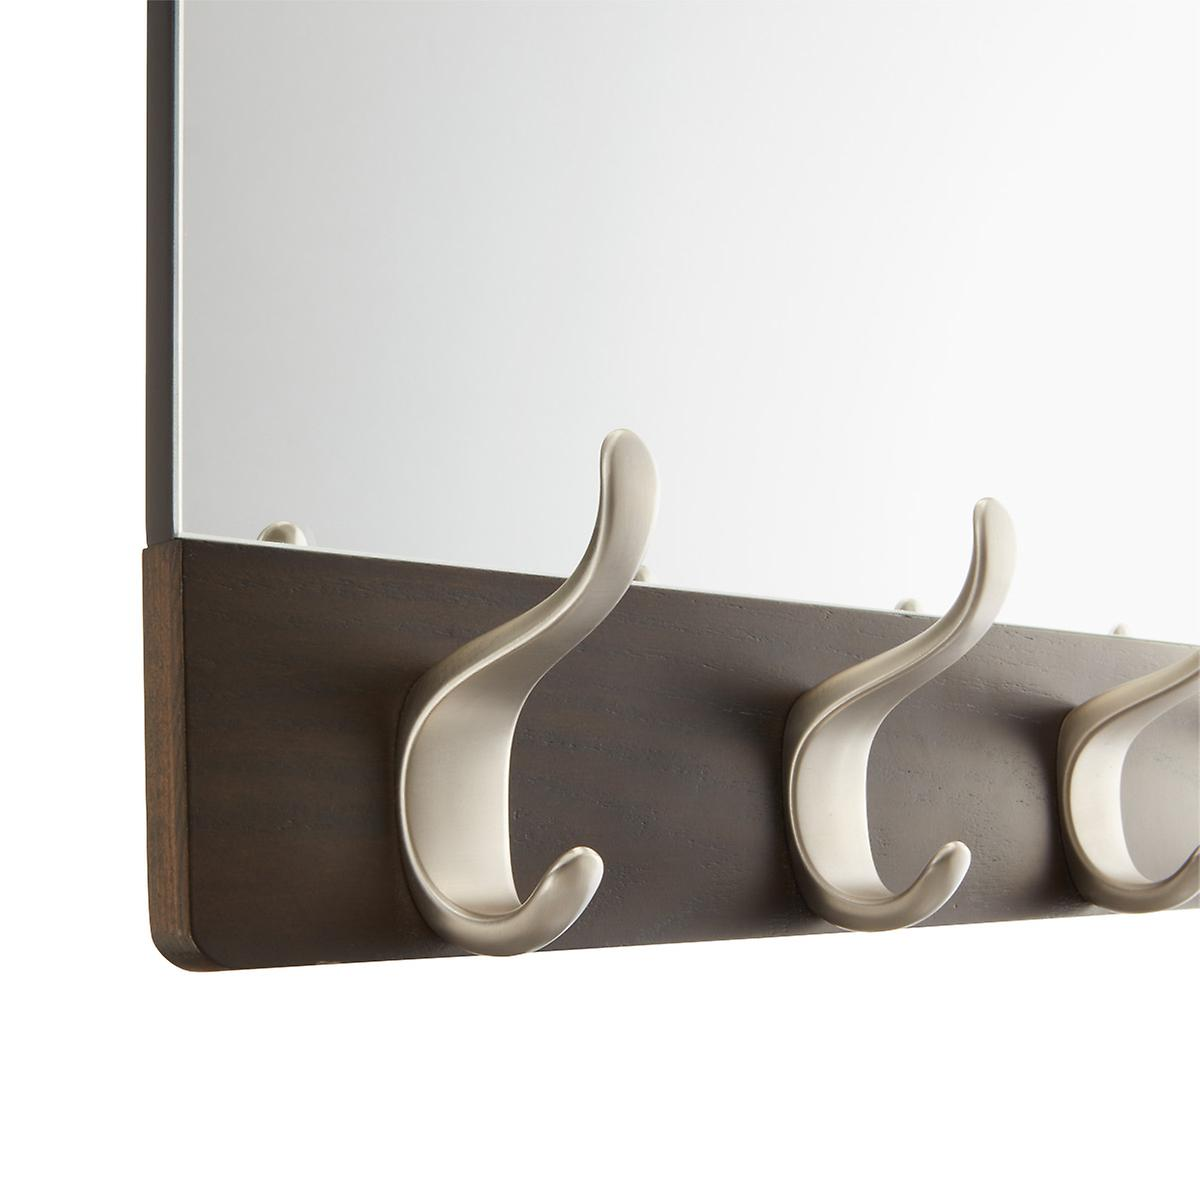 Umbra Walnut 5-Hook Wave Mirror | The Container Store